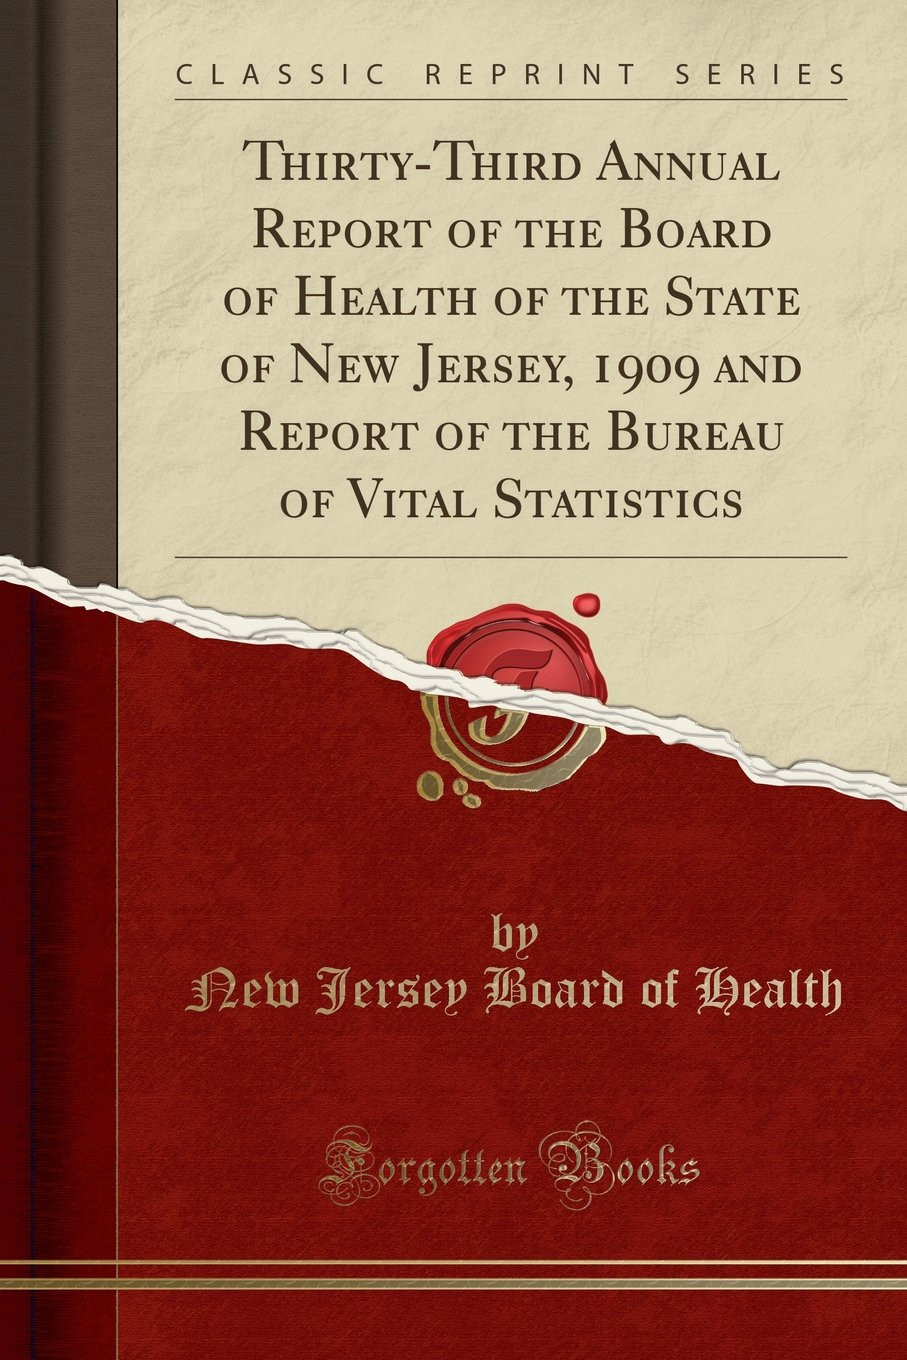 Thirty-Third Annual Report of the Board of Health of the State of New Jersey, 1909 and Report of the Bureau of Vital Statistics (Classic Reprint) pdf epub